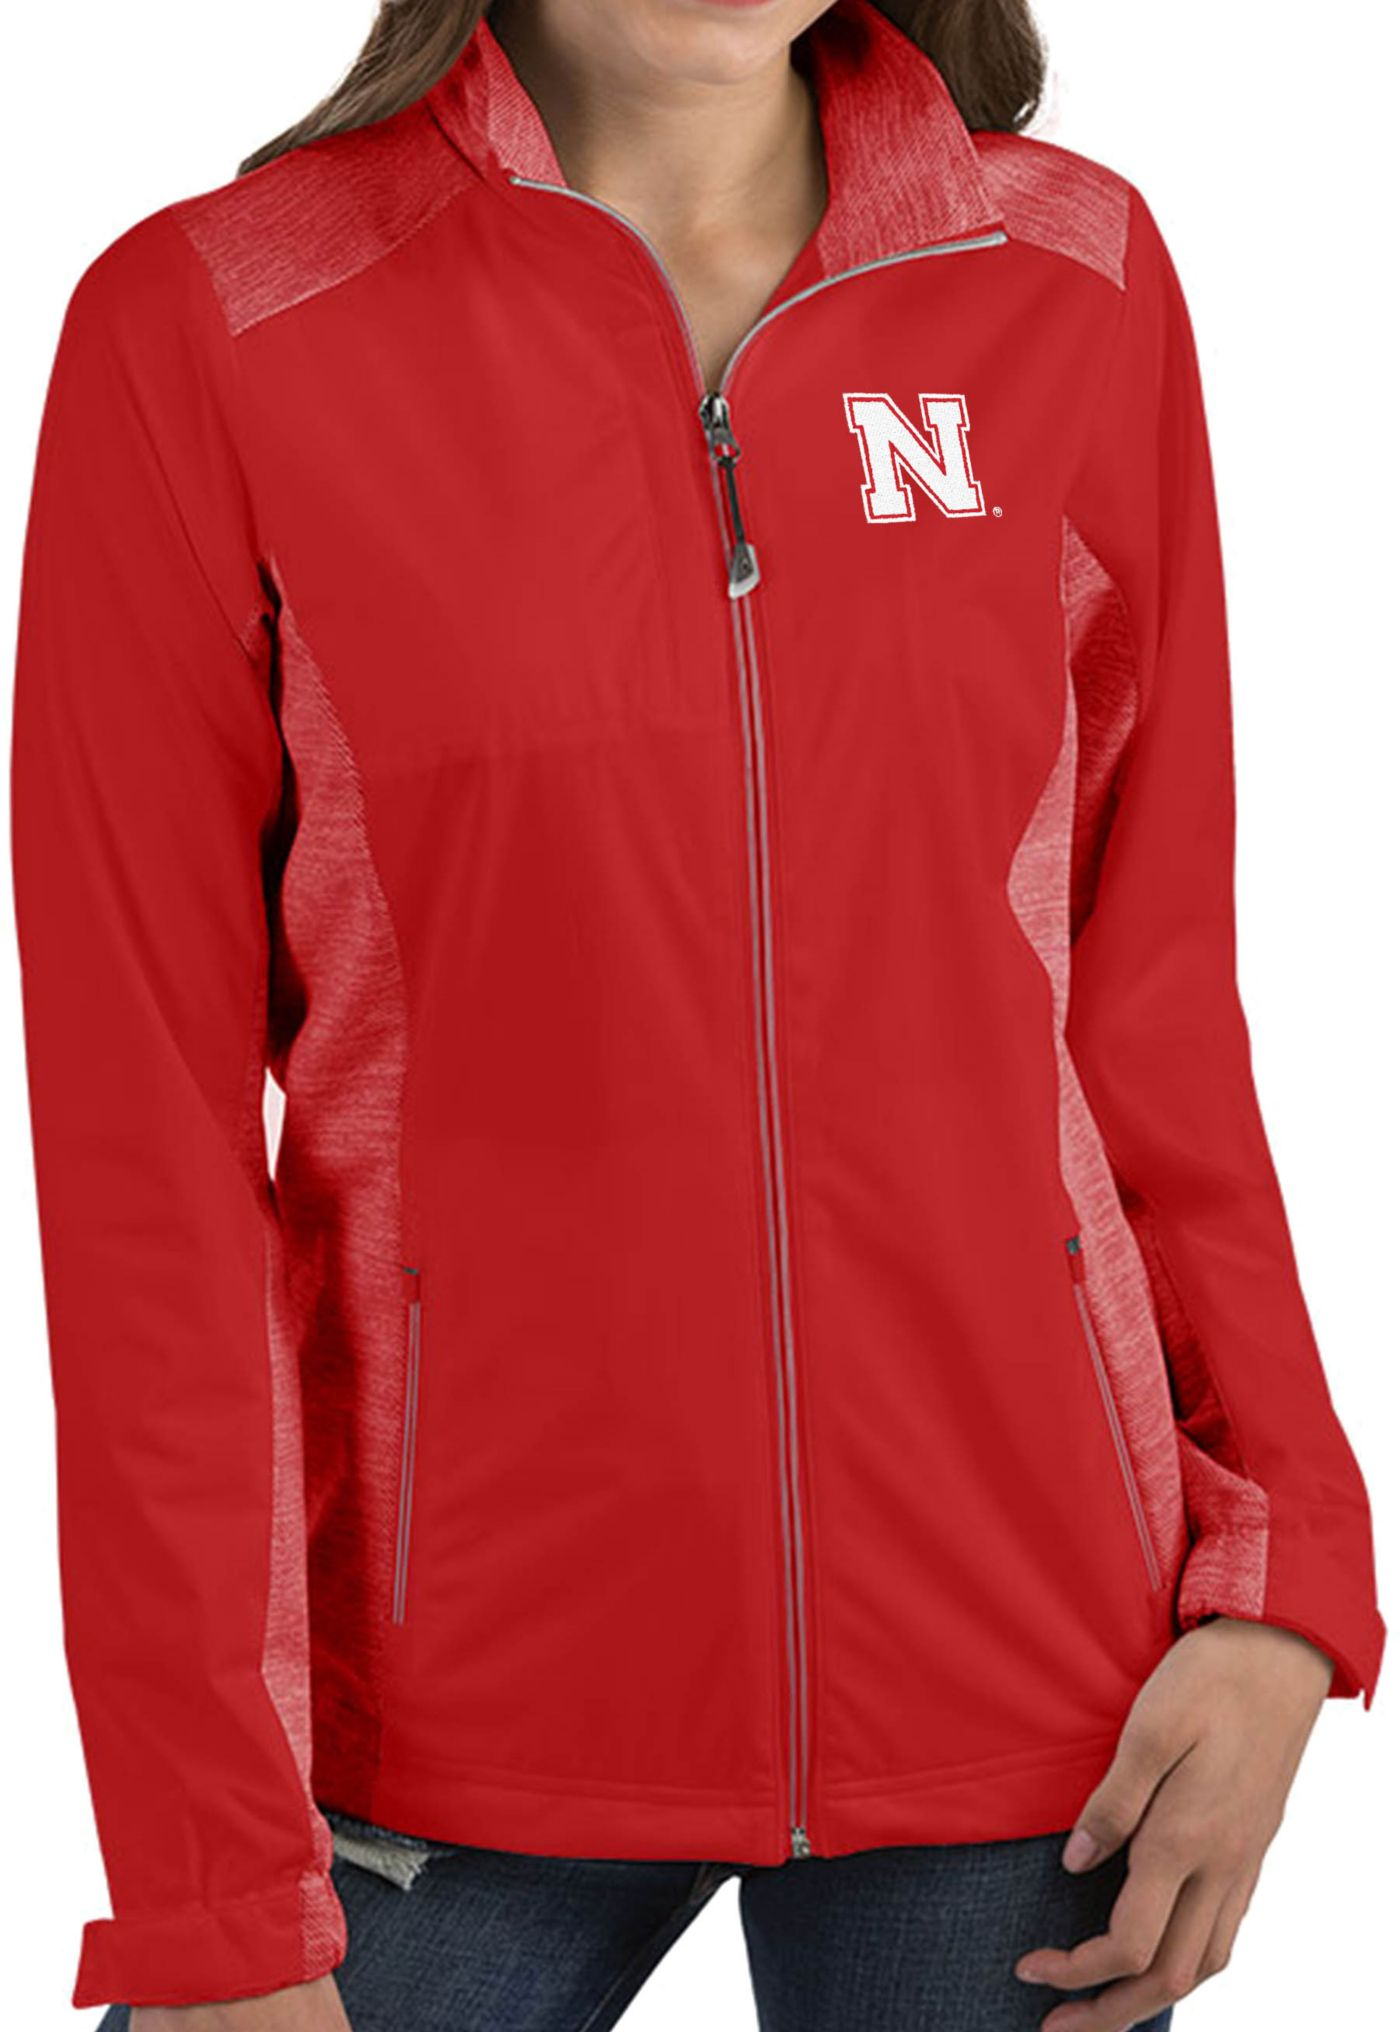 Antigua Women's Nebraska Cornhuskers Red Revolve Full-Zip Jacket